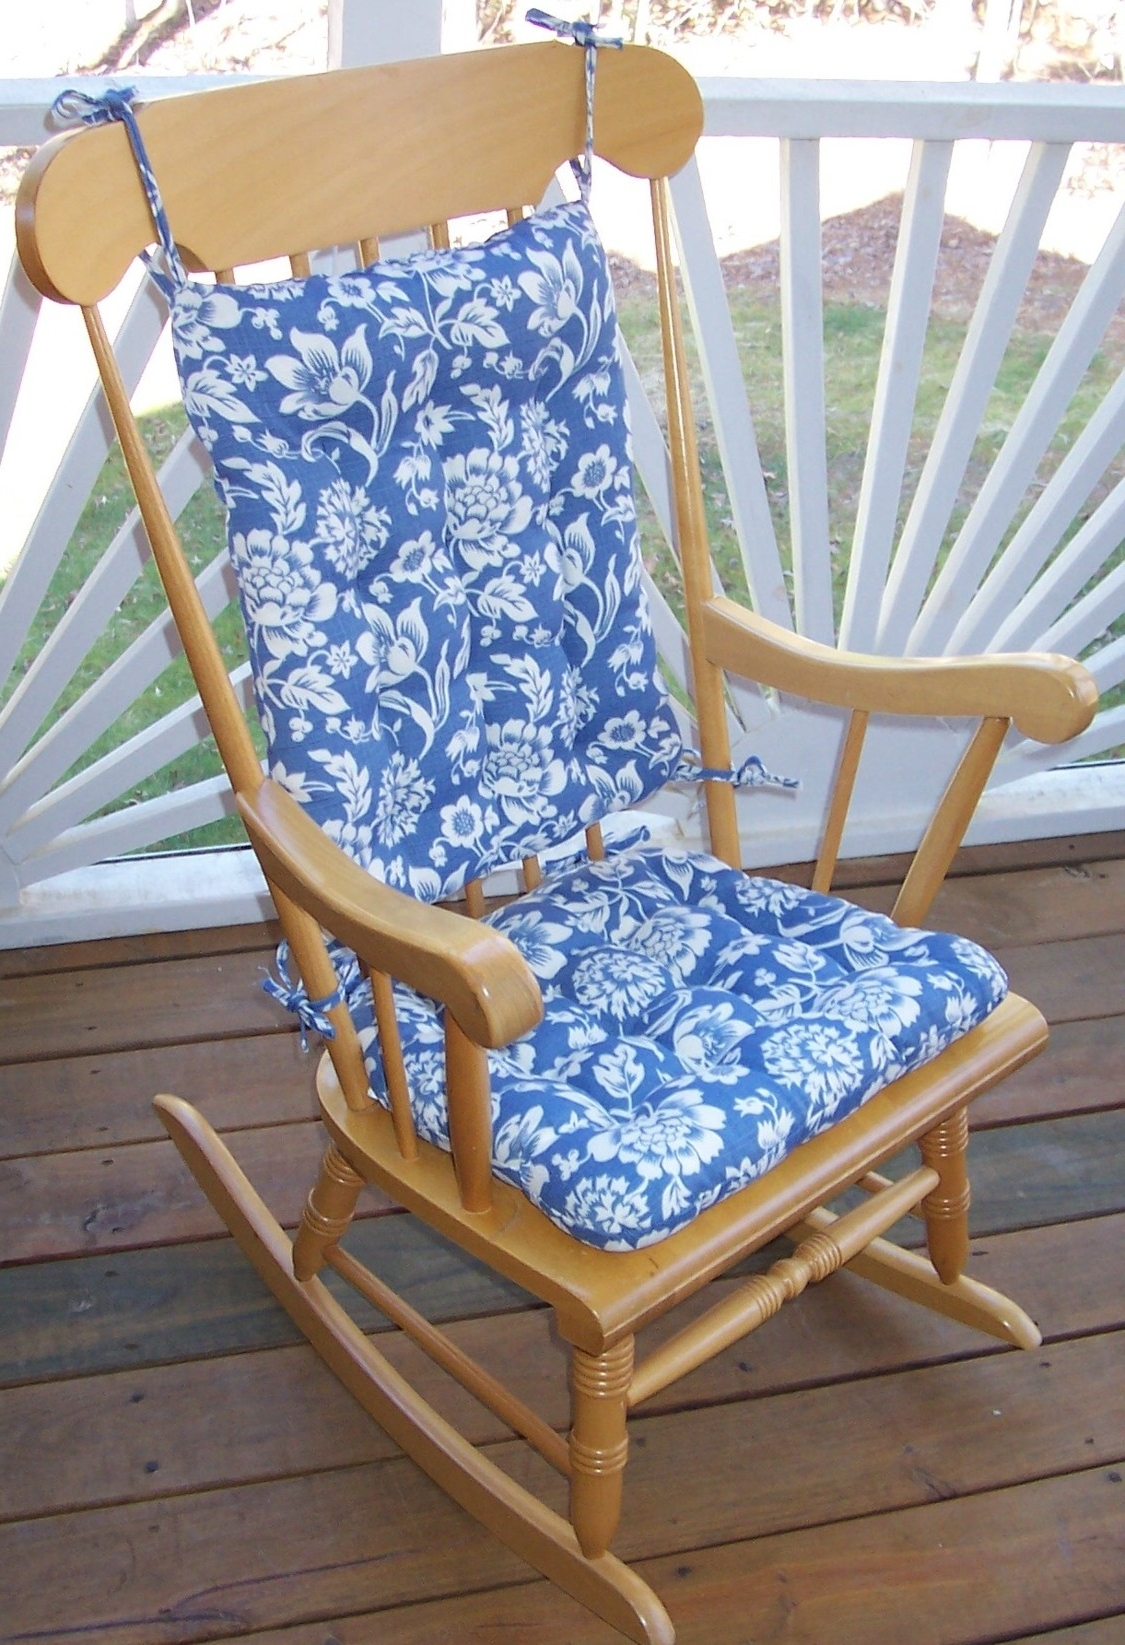 Rocking Chair Cushions For Outdoor For Most Popular Outdoor Rocking Chair Cushions Pattern : Beautiful Outdoor Rocking (View 12 of 15)